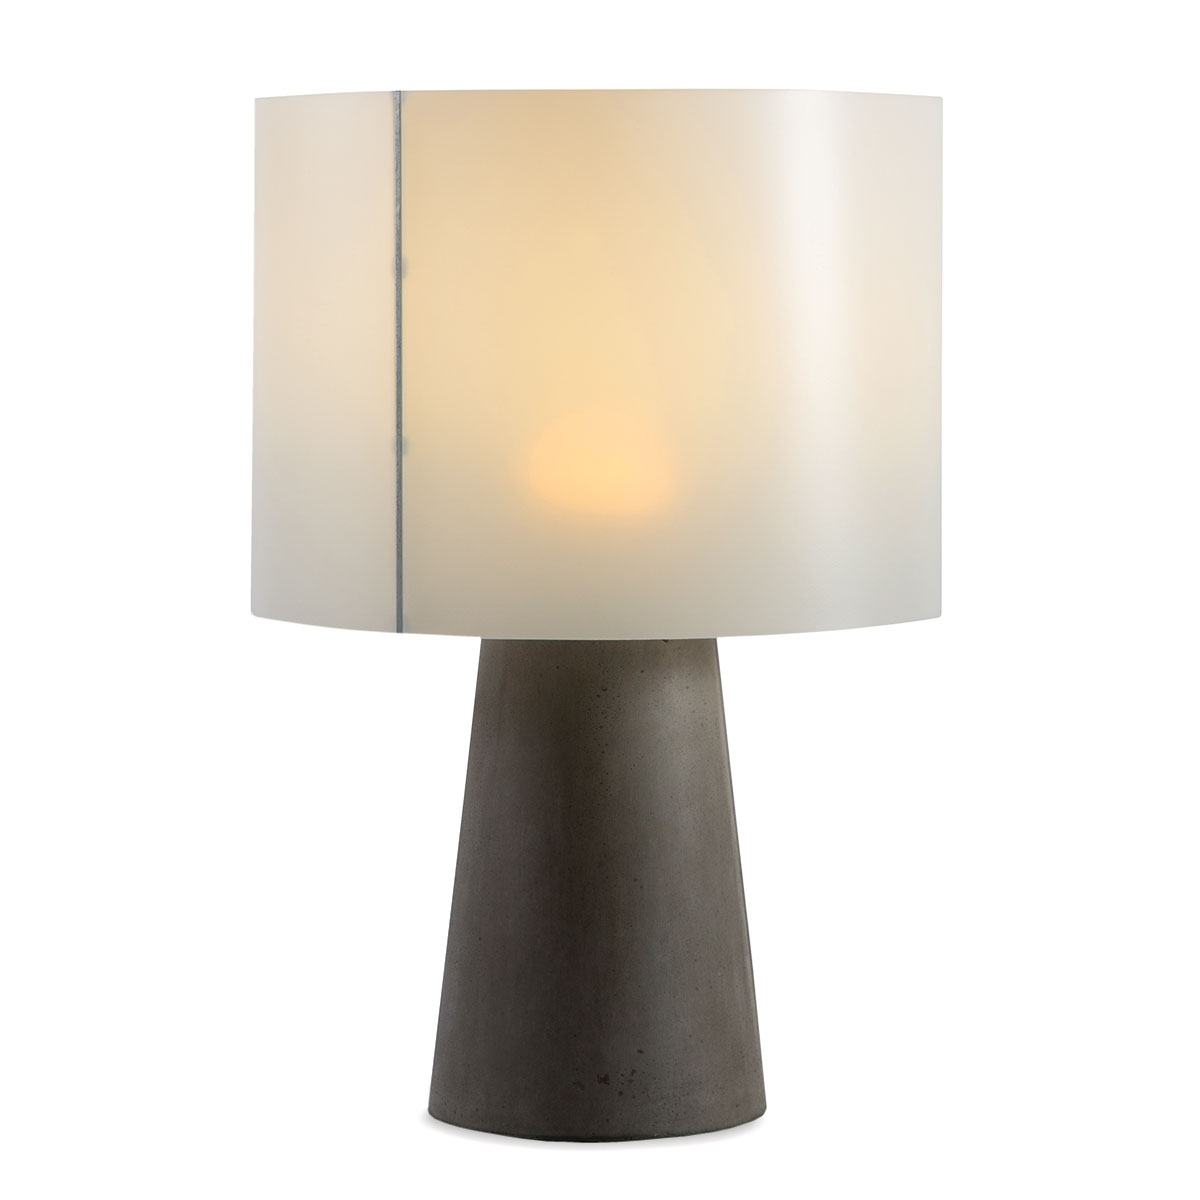 Well Known Living Room Table Lamps At Target Regarding Lamp : Outdoor Cordless Concrete Table Lamp Dark Gray Items Creation (View 12 of 20)